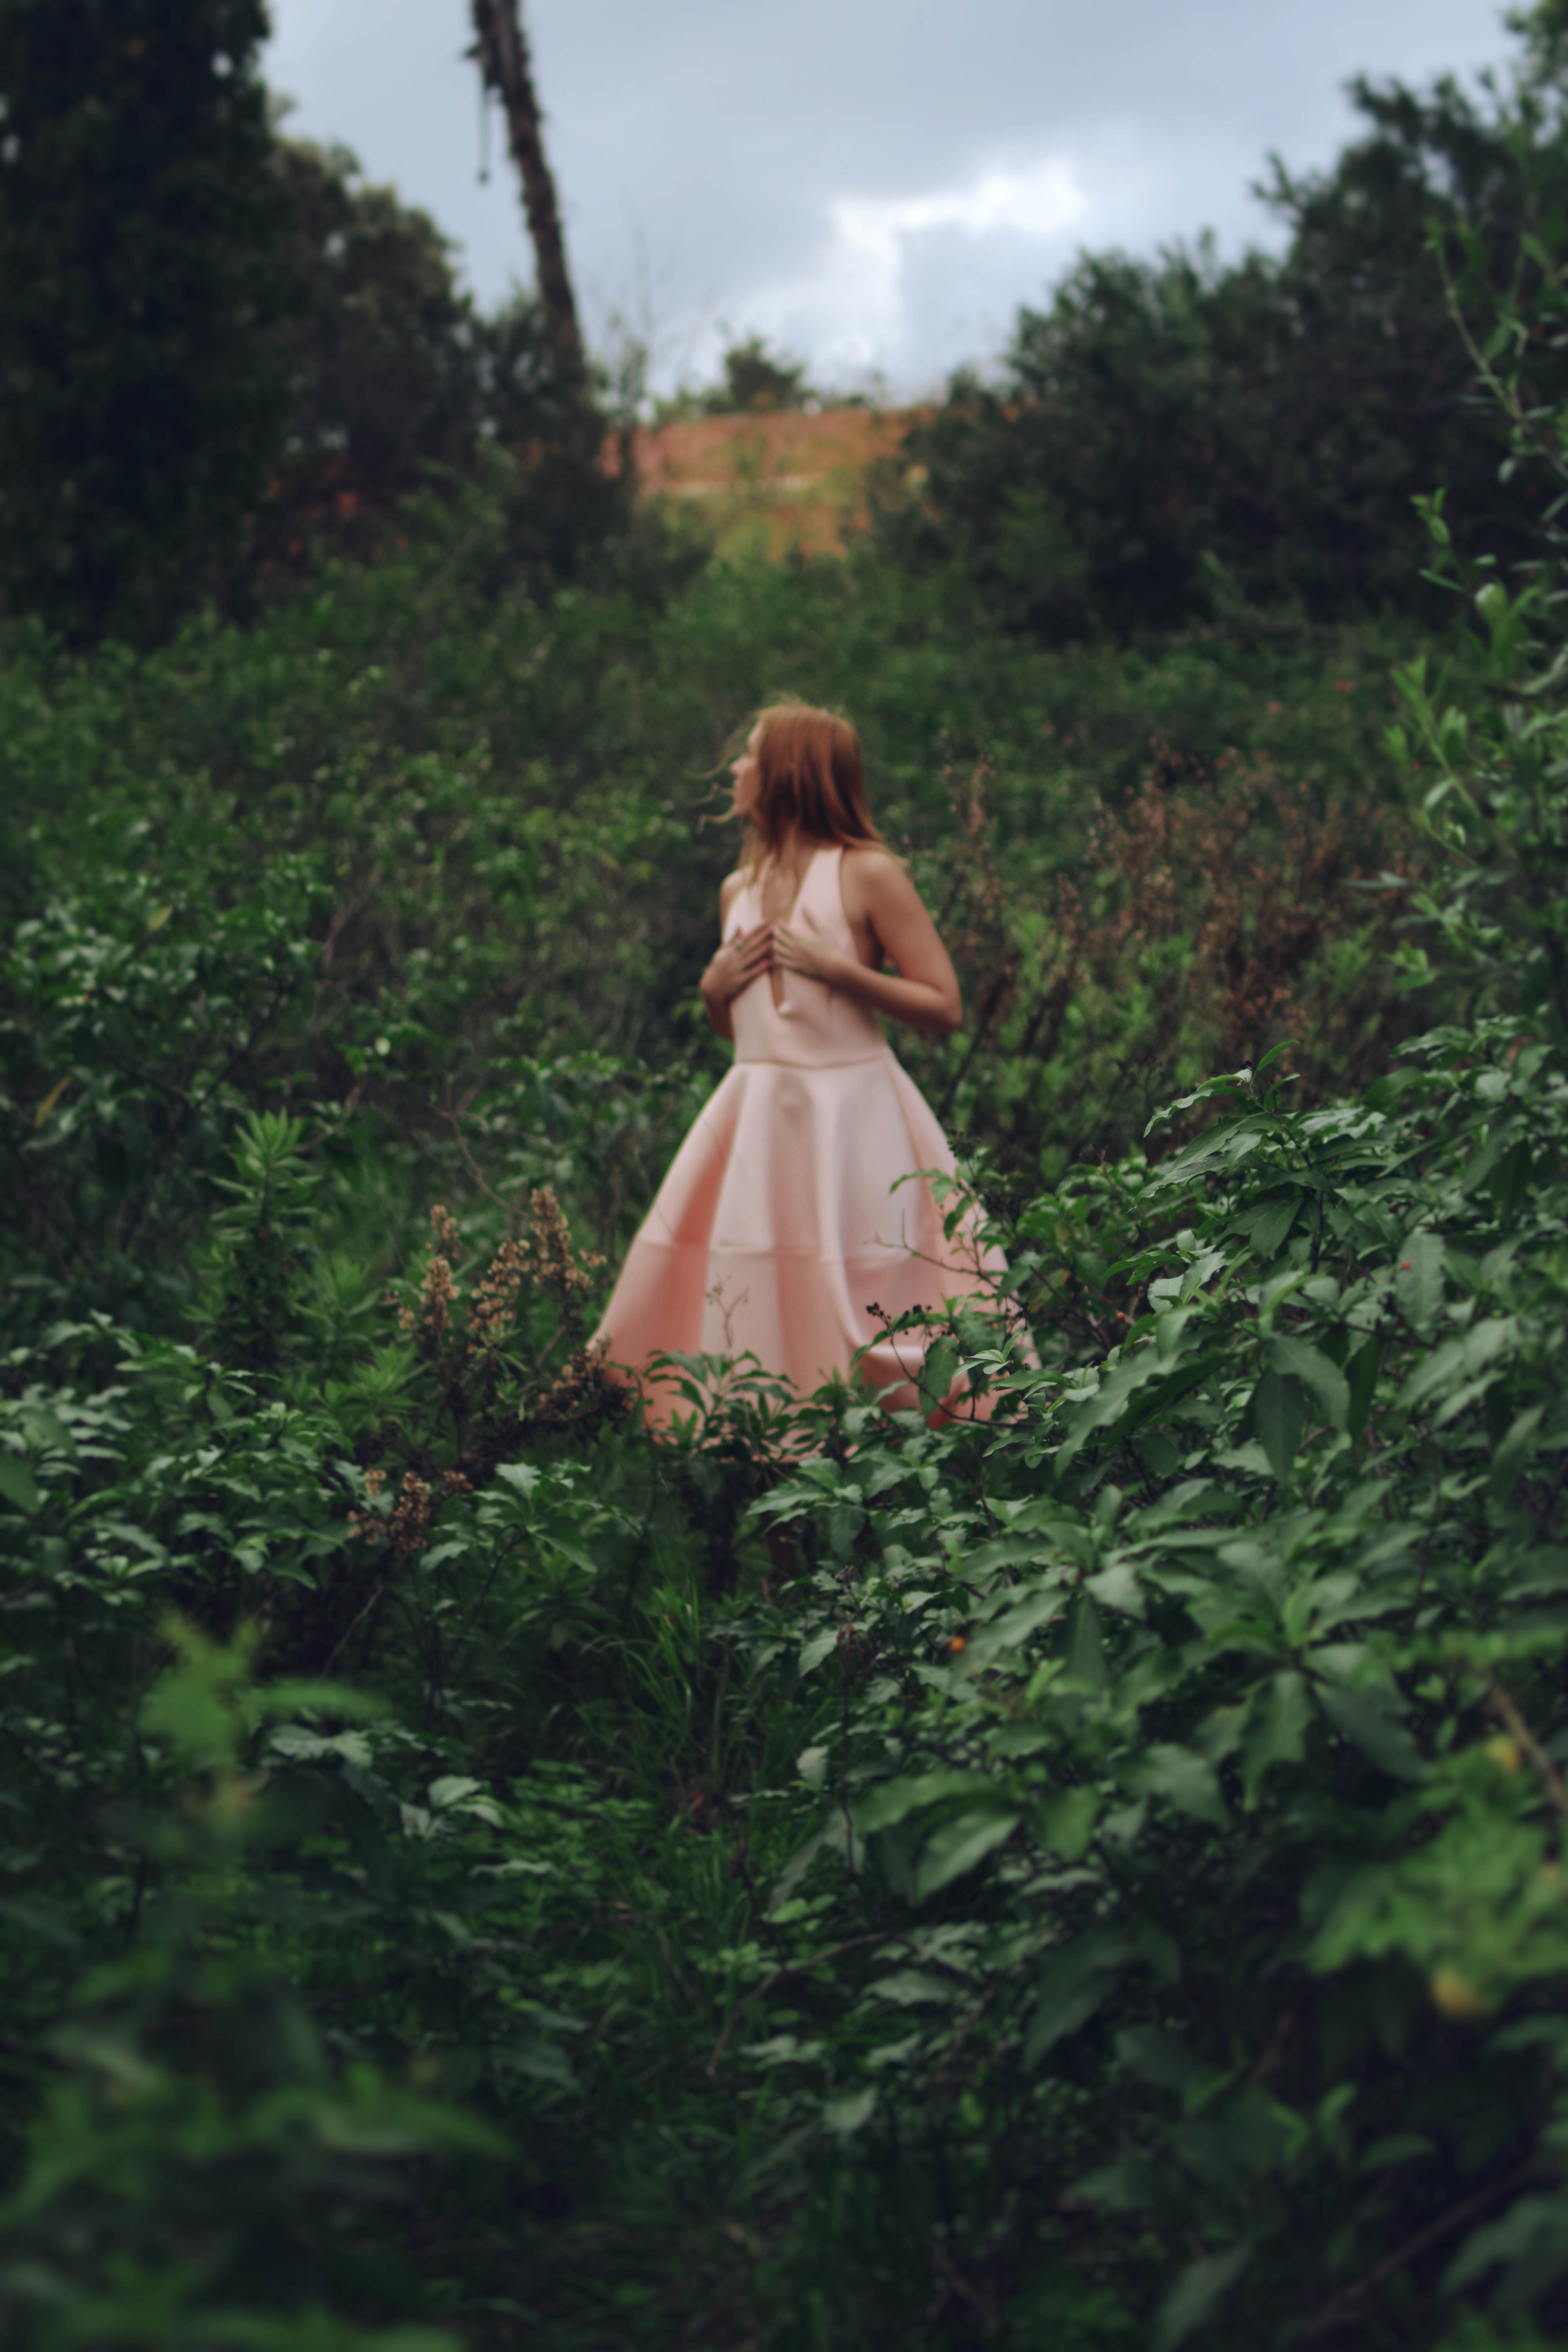 student photo - woman in wood